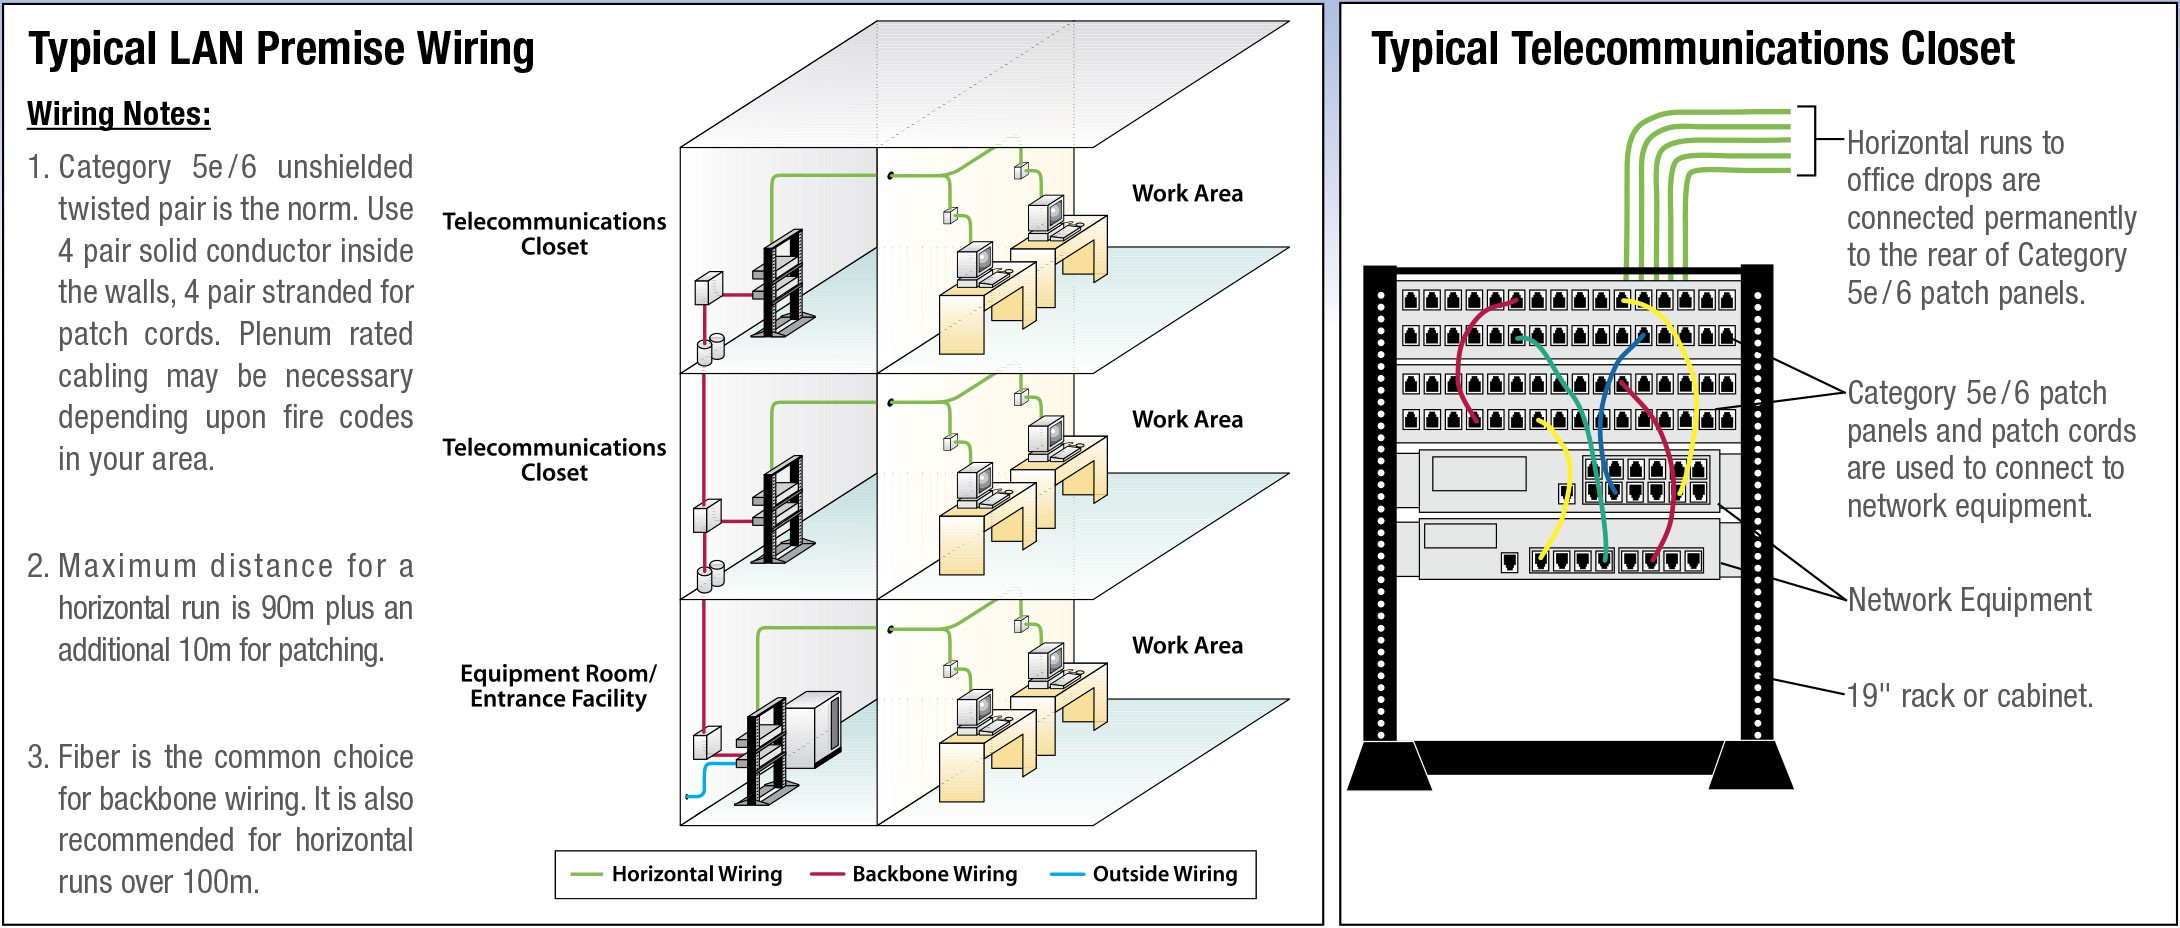 Cat 6 Wiring Diagram Best Cat 5 Ethernet Wiring Everything You Need to Know Of Cat 6 Wiring Diagram